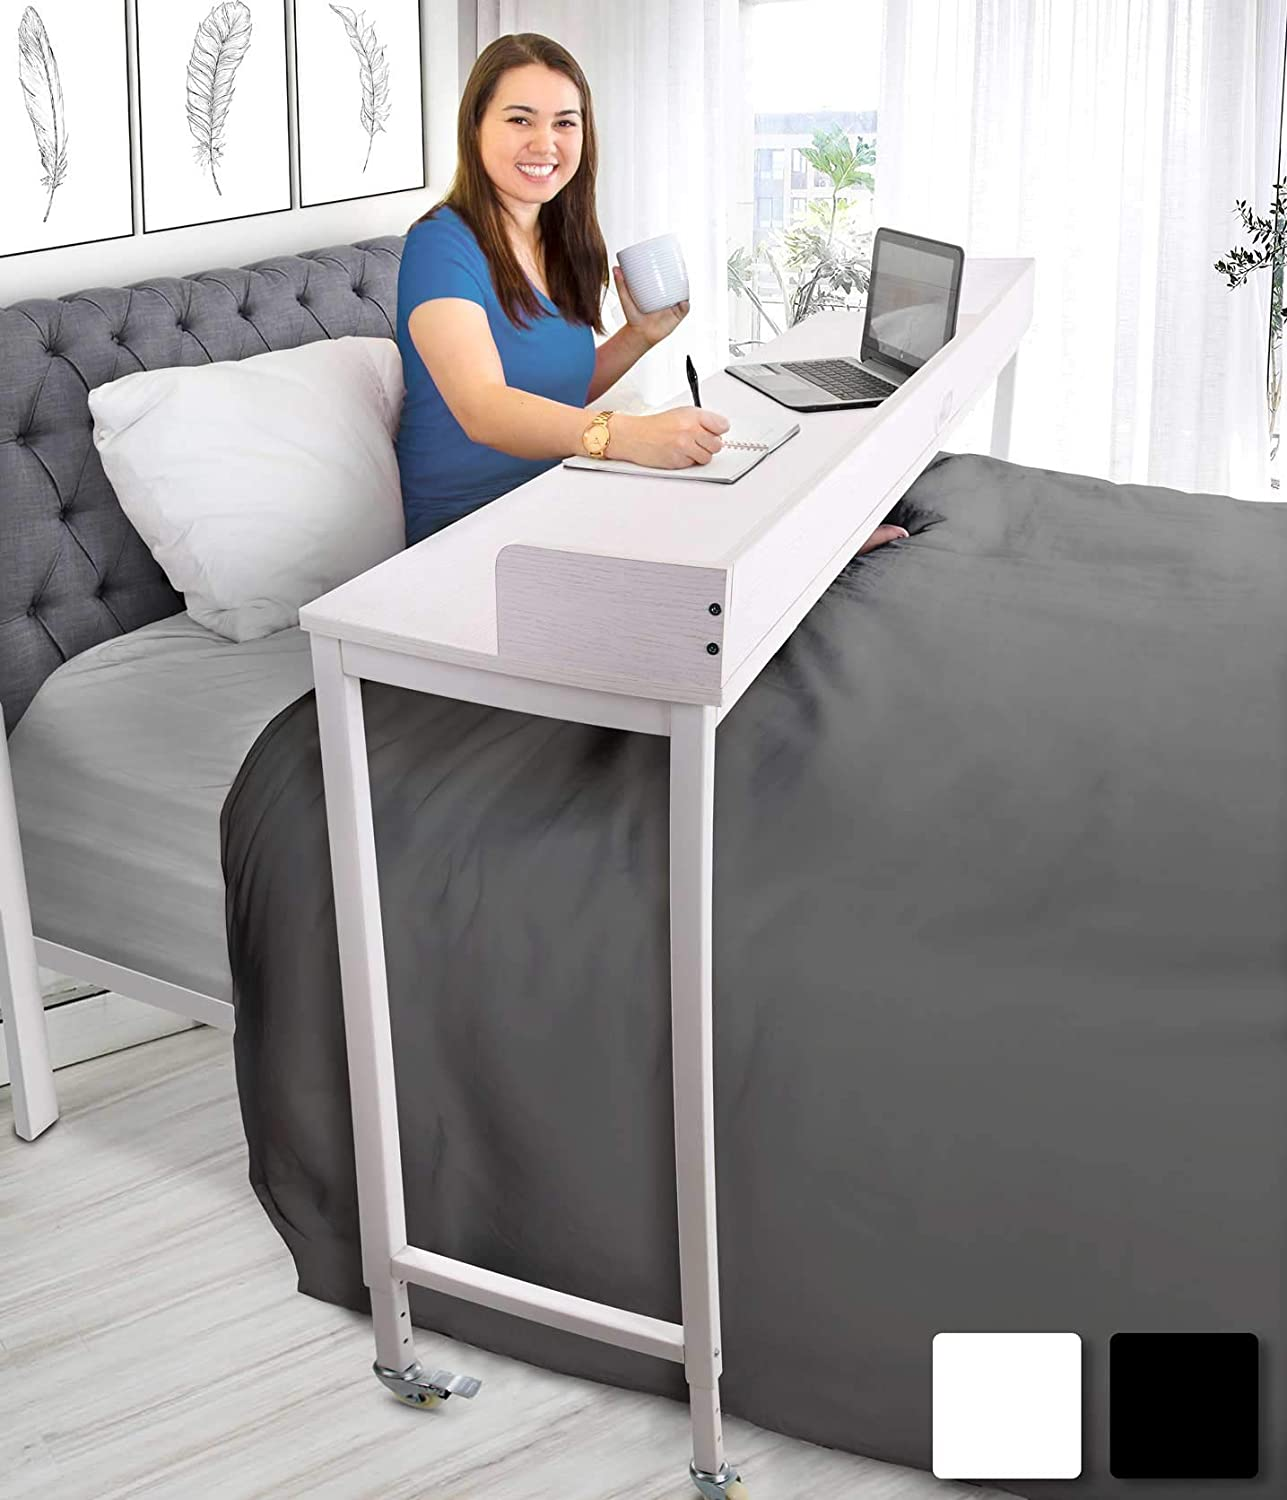 Joy Overbed Table with Wheels  Height Adjustable Rolling Bed Desk for  Full/Queen Beds  Mobile Multi-Functional Table  Great for Bedroom, Dining